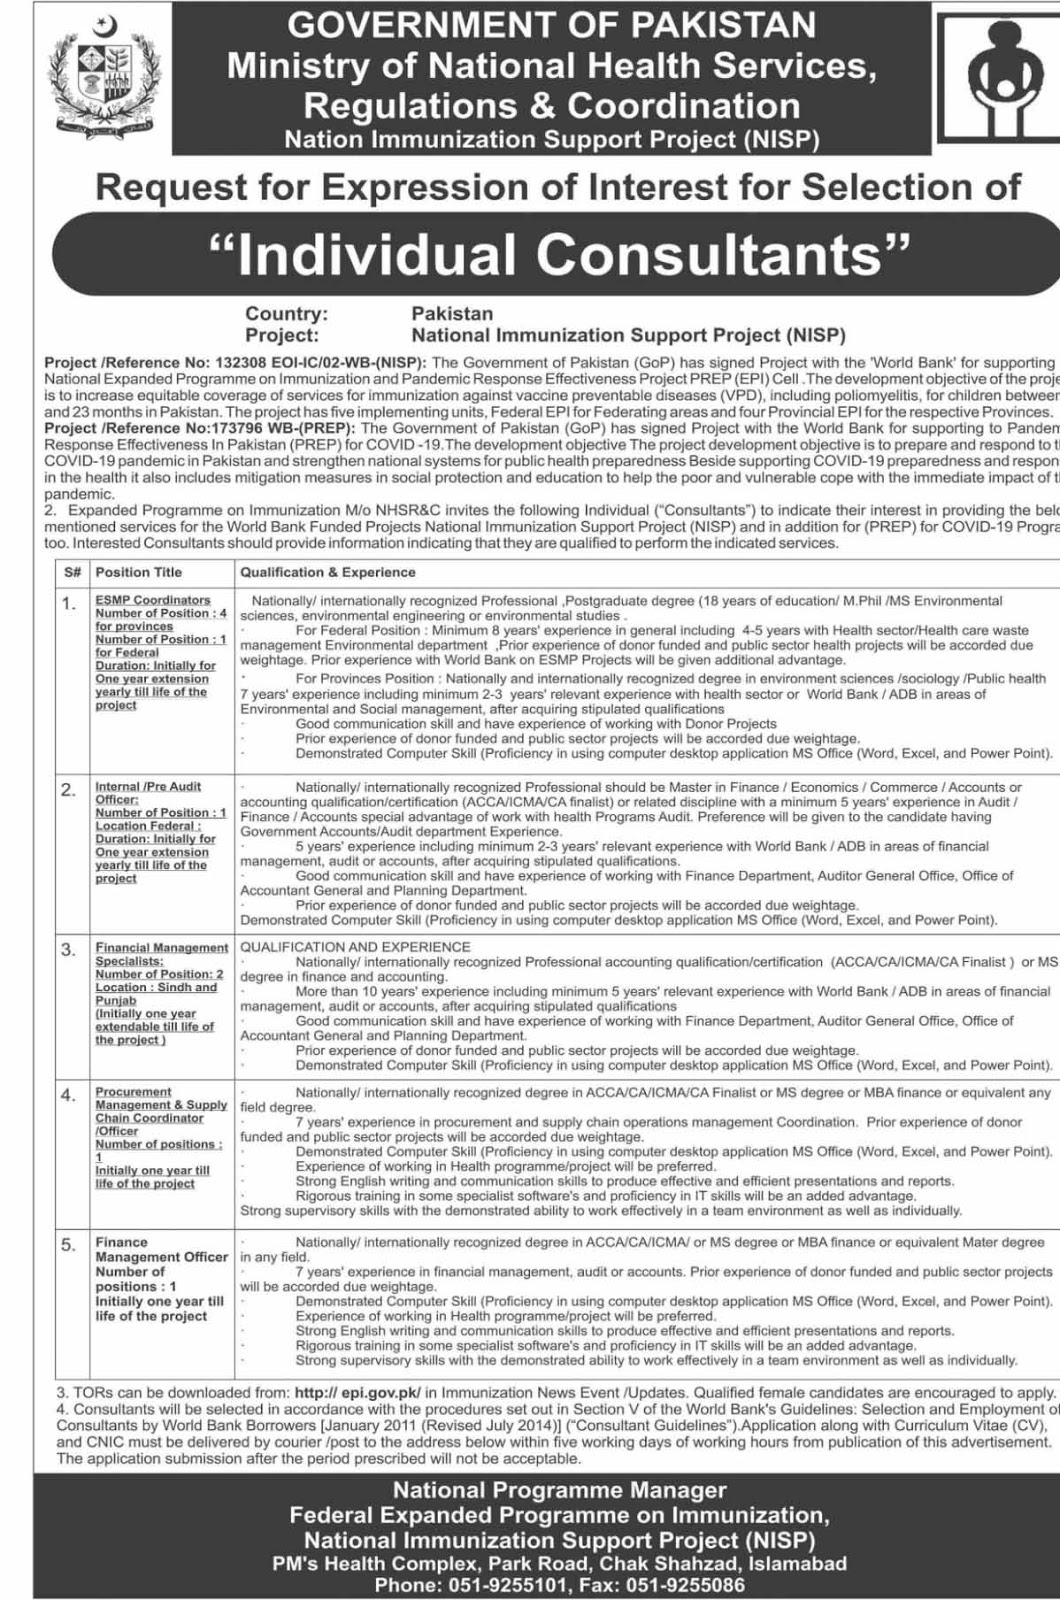 Jobs in Nation Immunization Support Project NISP April 2020